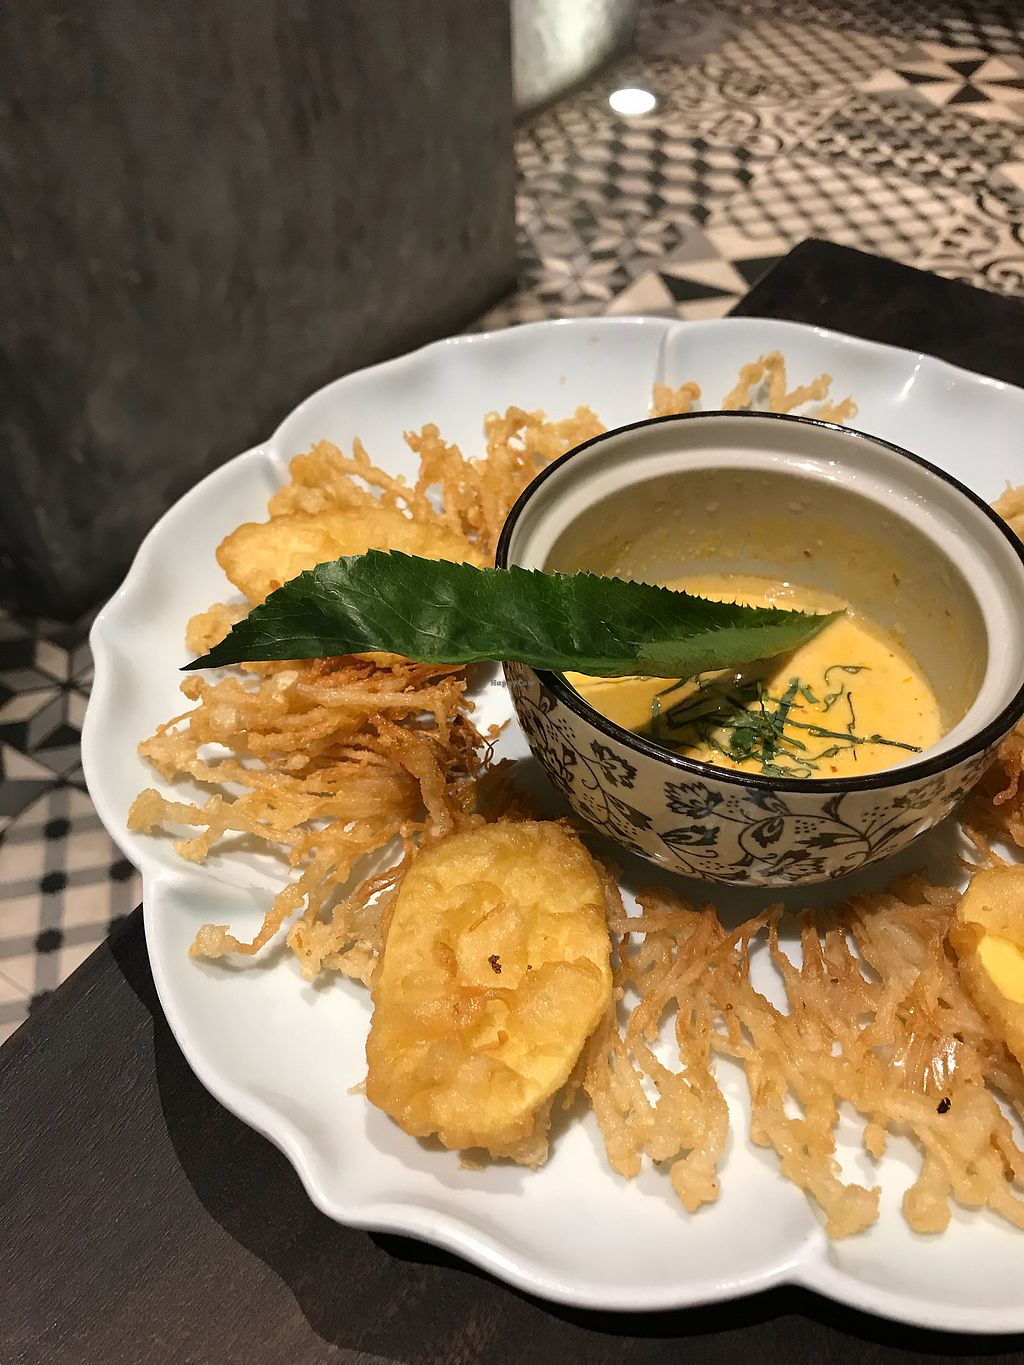 """Photo of Uu Dam Chay  by <a href=""""/members/profile/vegetariangirl"""">vegetariangirl</a> <br/>Fried enoki mushrooms <br/> January 15, 2018  - <a href='/contact/abuse/image/73265/346812'>Report</a>"""